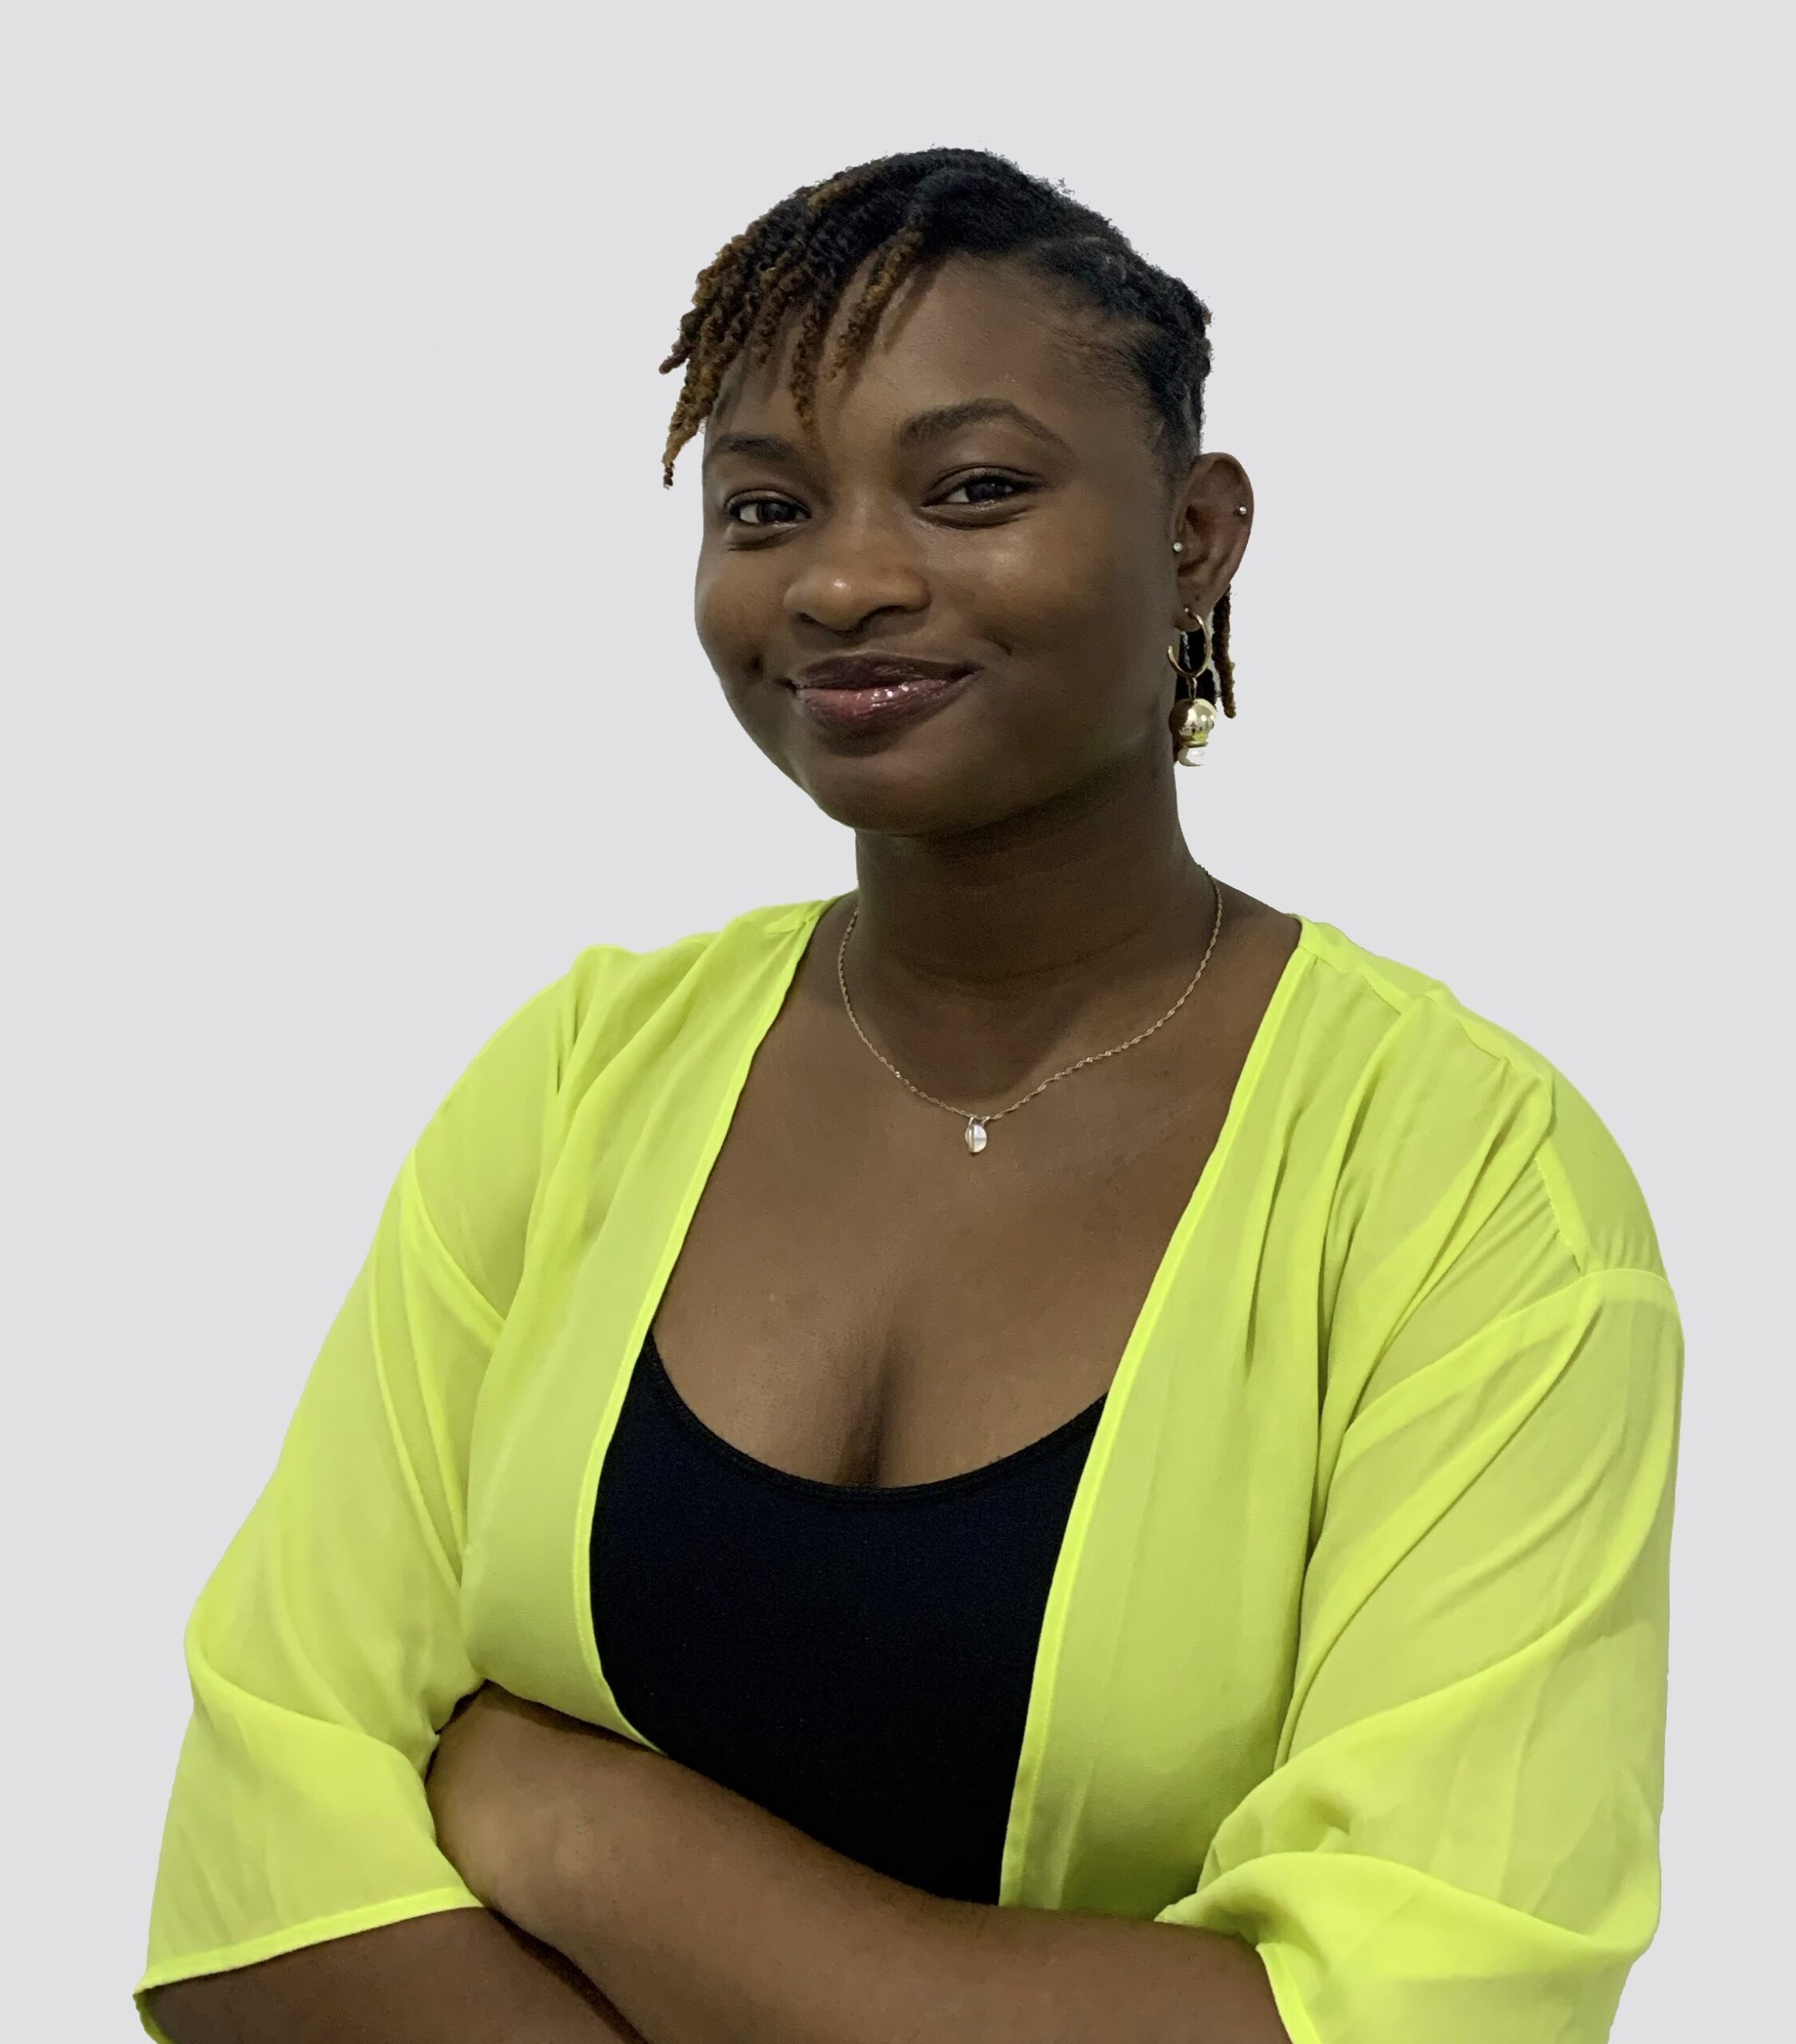 By Aisha Owolabi, Content Marketing Manager, Wizeline